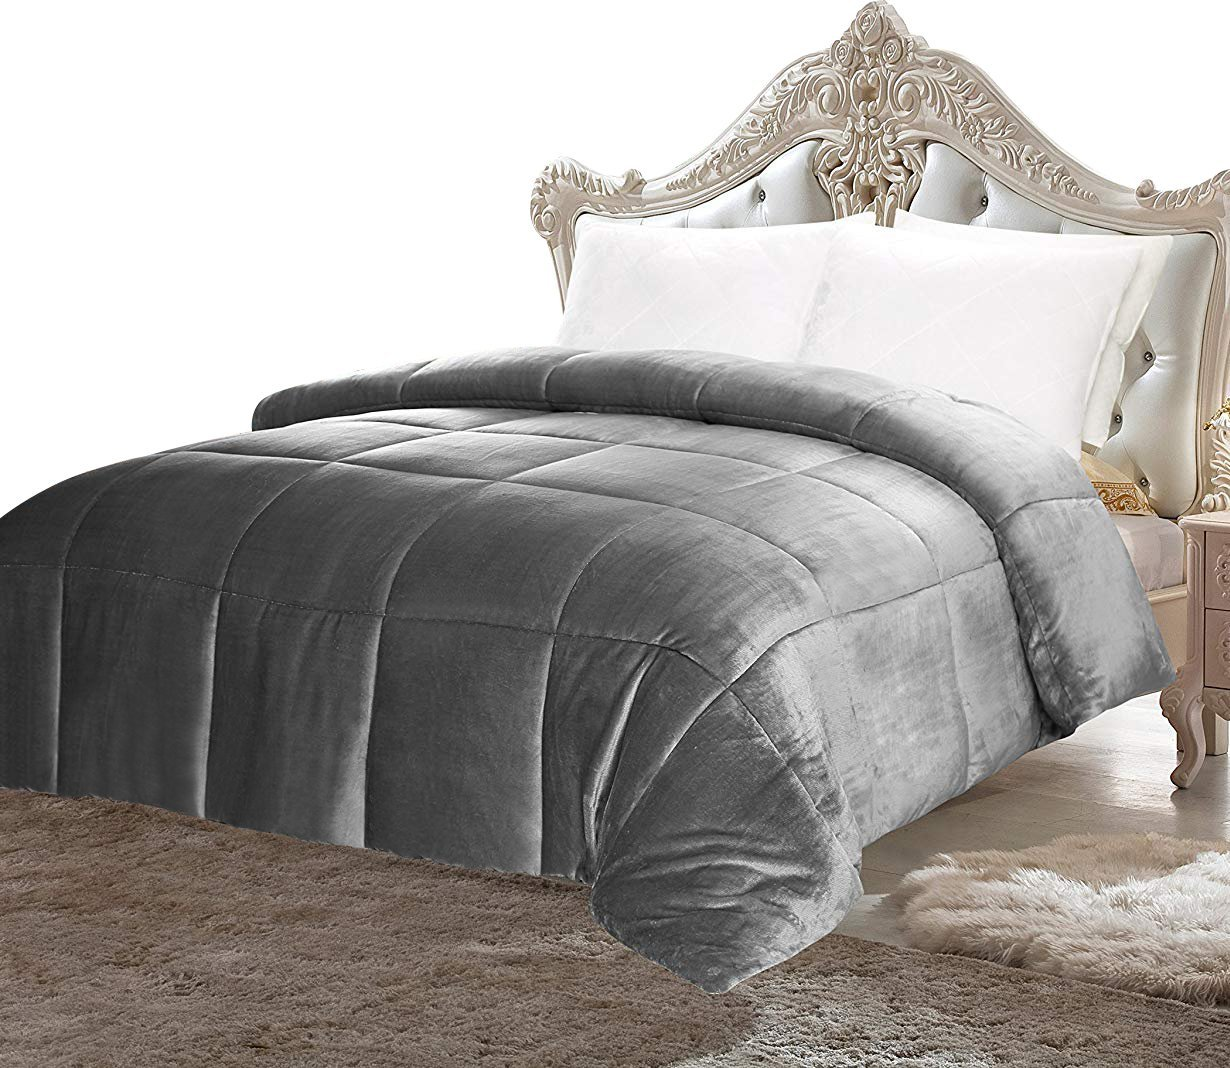 Utopia Bedding Comforter Sherpa Flannel (Queen) - All Season - Machine Washable - Luxury Goose Down Alternative - Reversible - Ultra Soft - Box Stitched